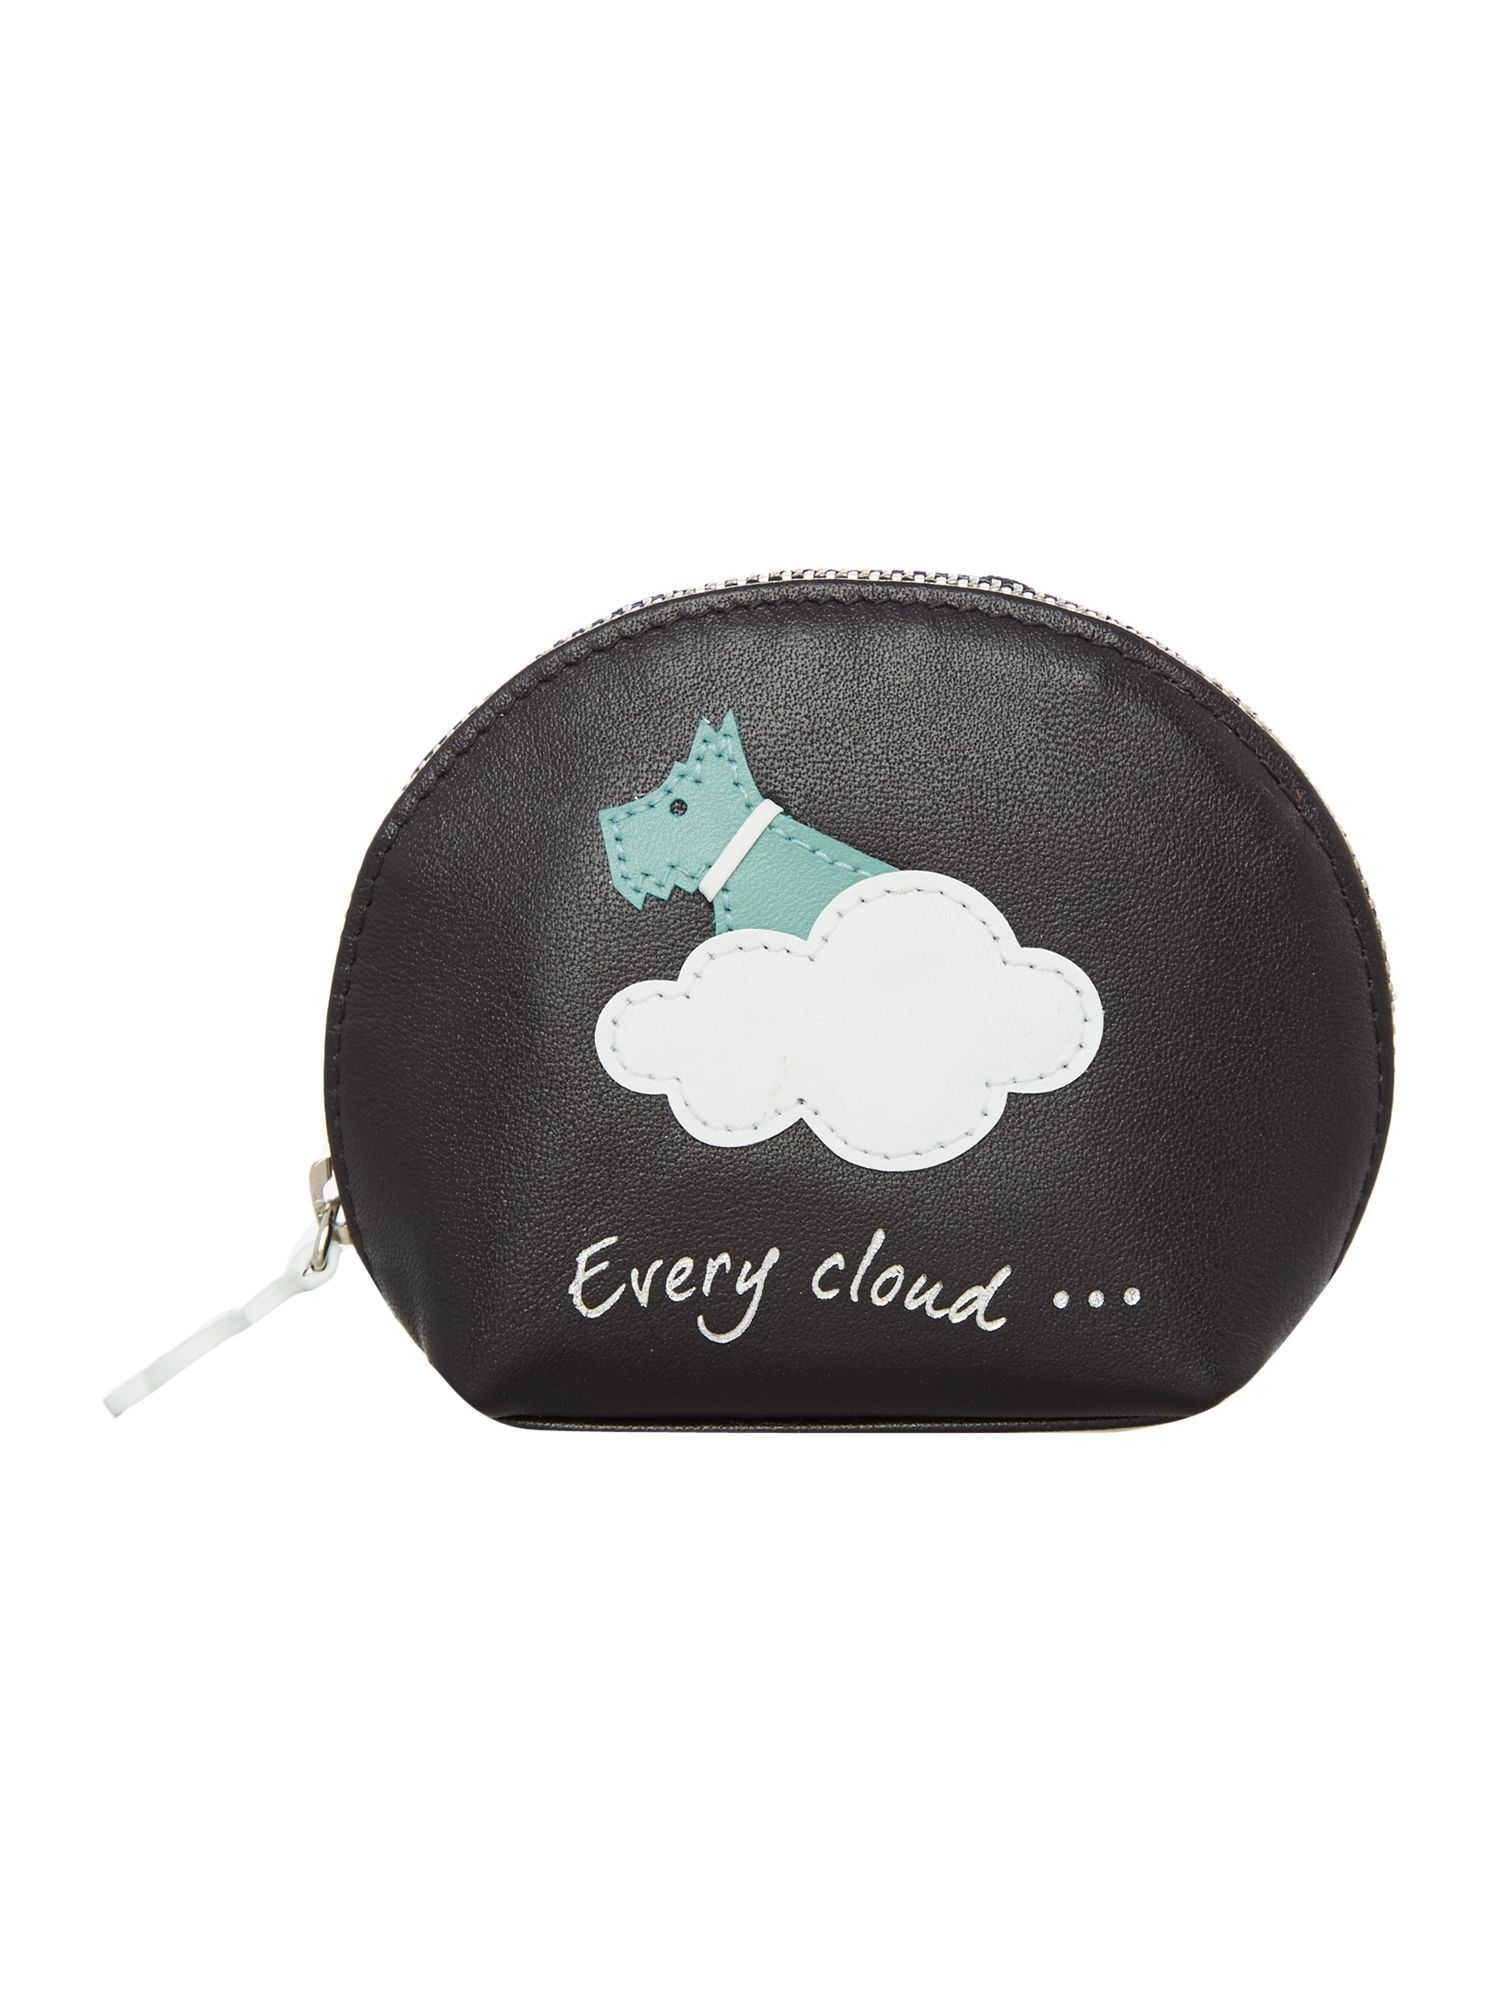 Radley Silver lining sml zip around coin purse Black